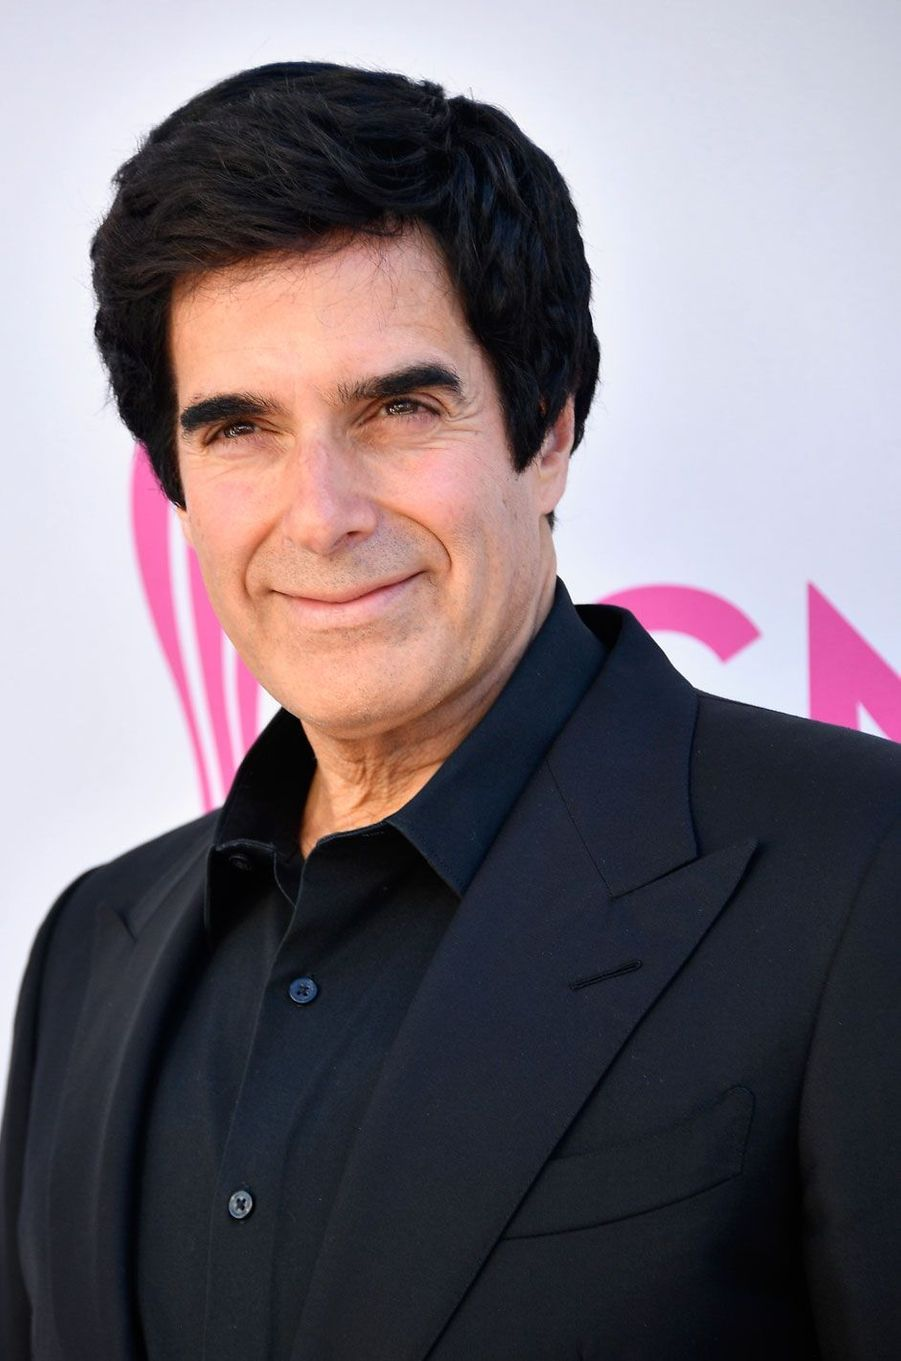 David Copperfield, 61,5 millions de dollars